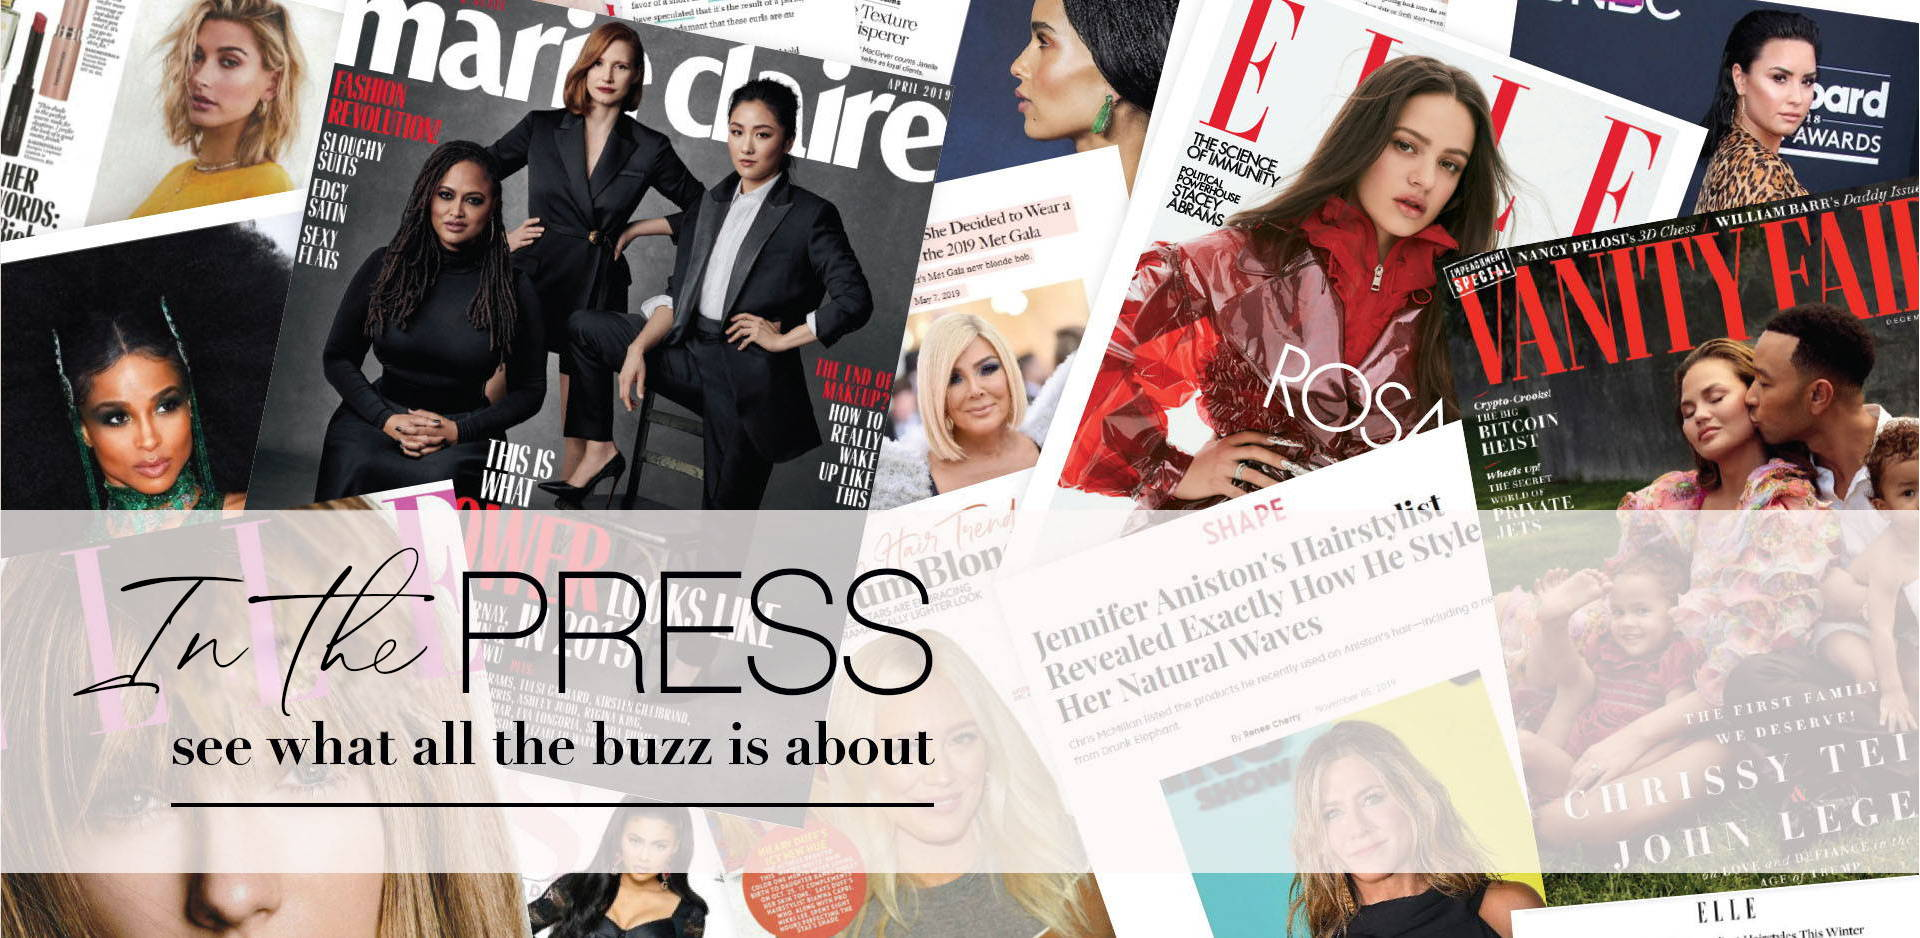 In the press - see what all the buzz is about